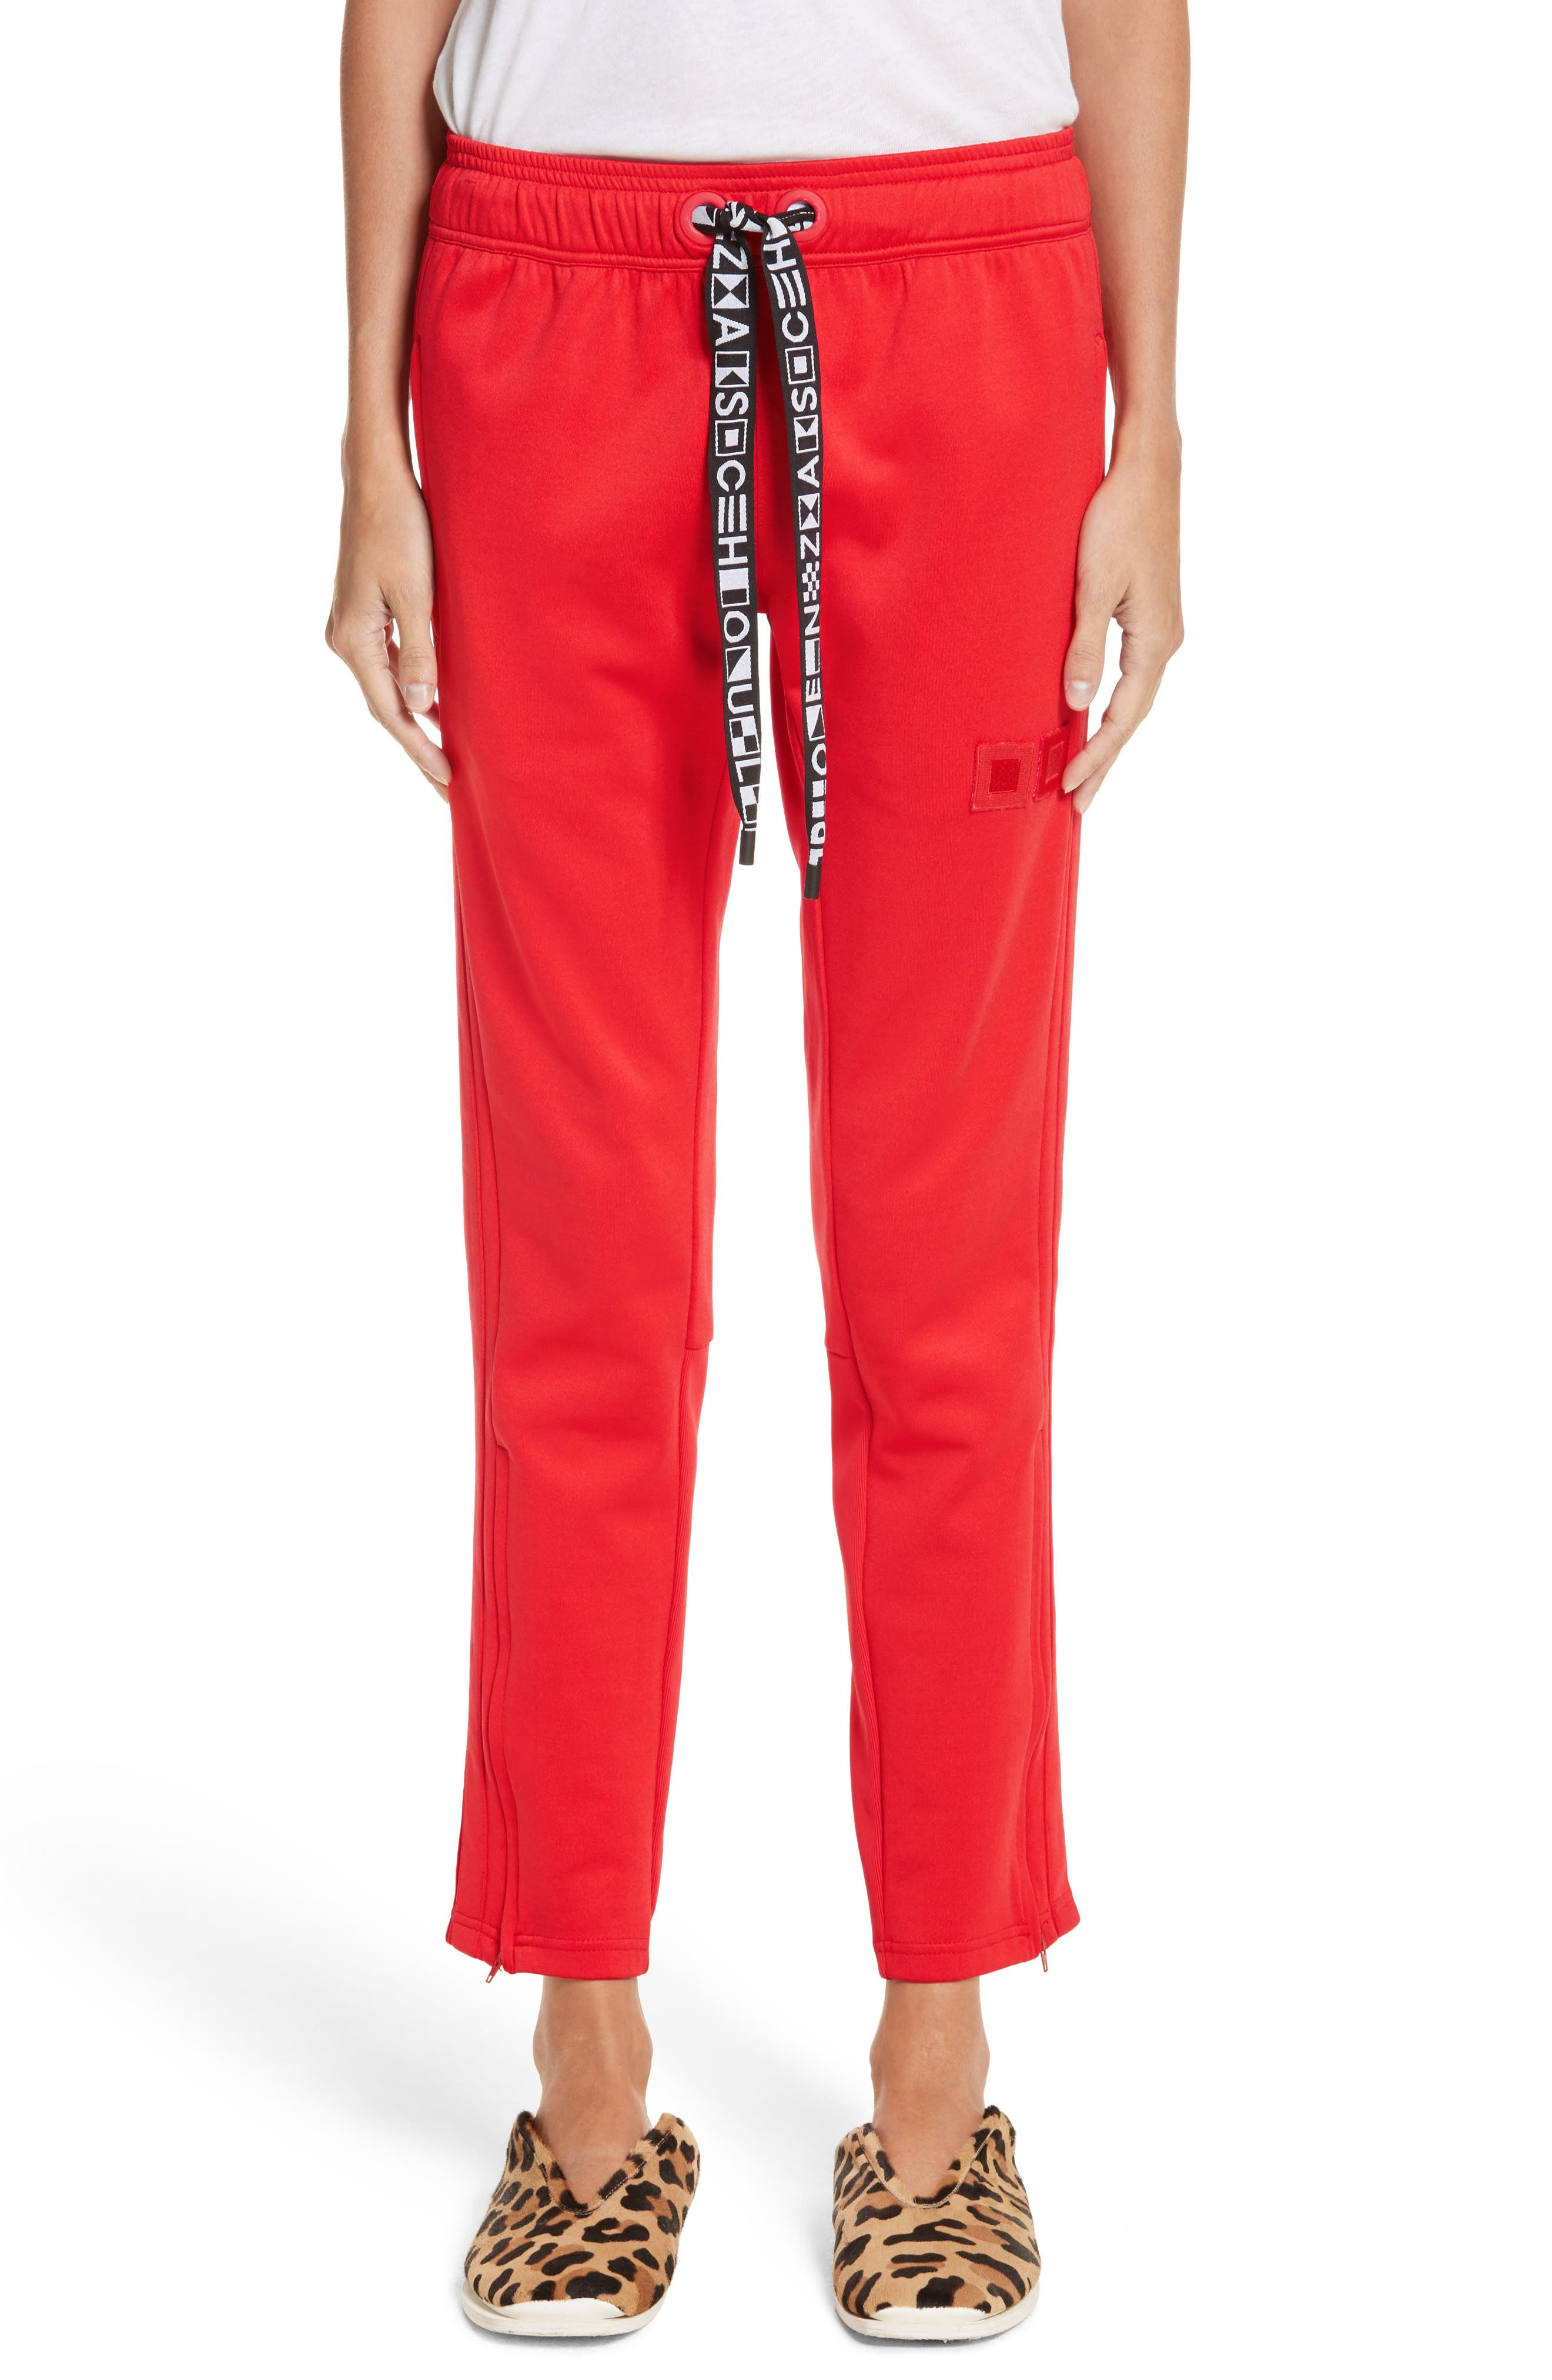 Proenza Schouler PSWL Jersey Track Pants